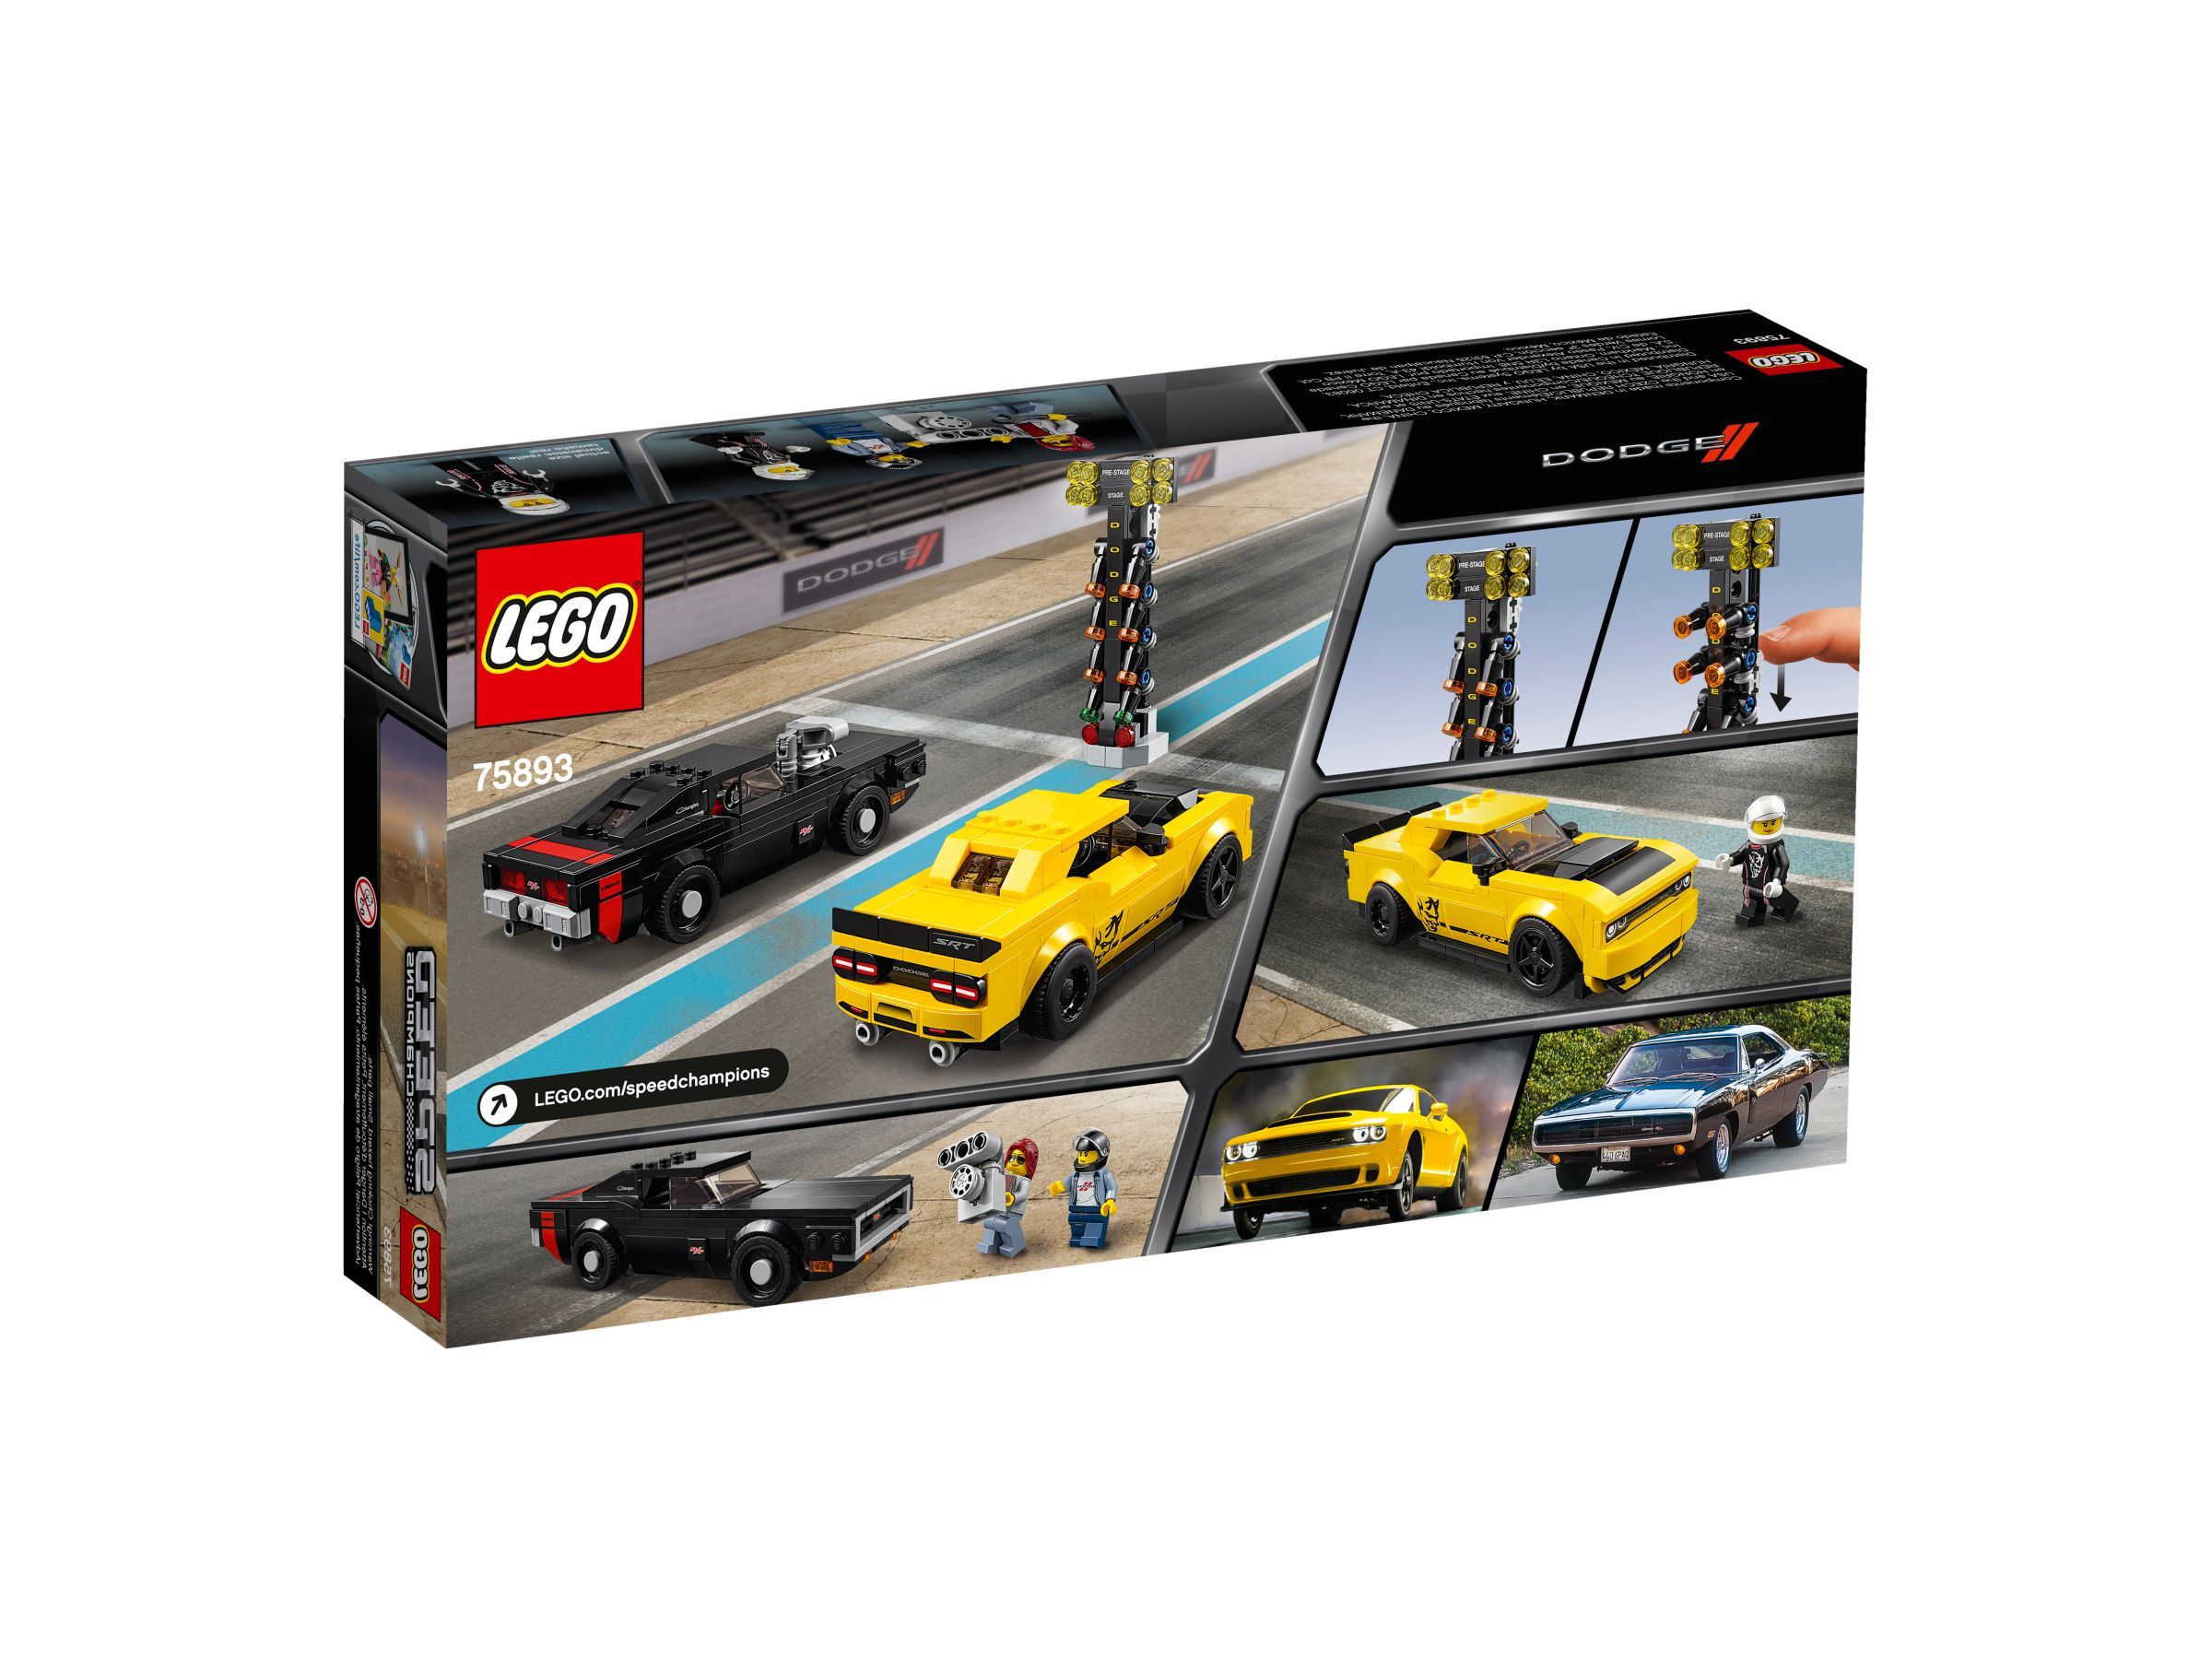 LEGO Speed Champions 75893 2018 Dodge Challenger SRT Demon und 1970 Dodge Charger R/T LEGO_75893_alt4.jpg